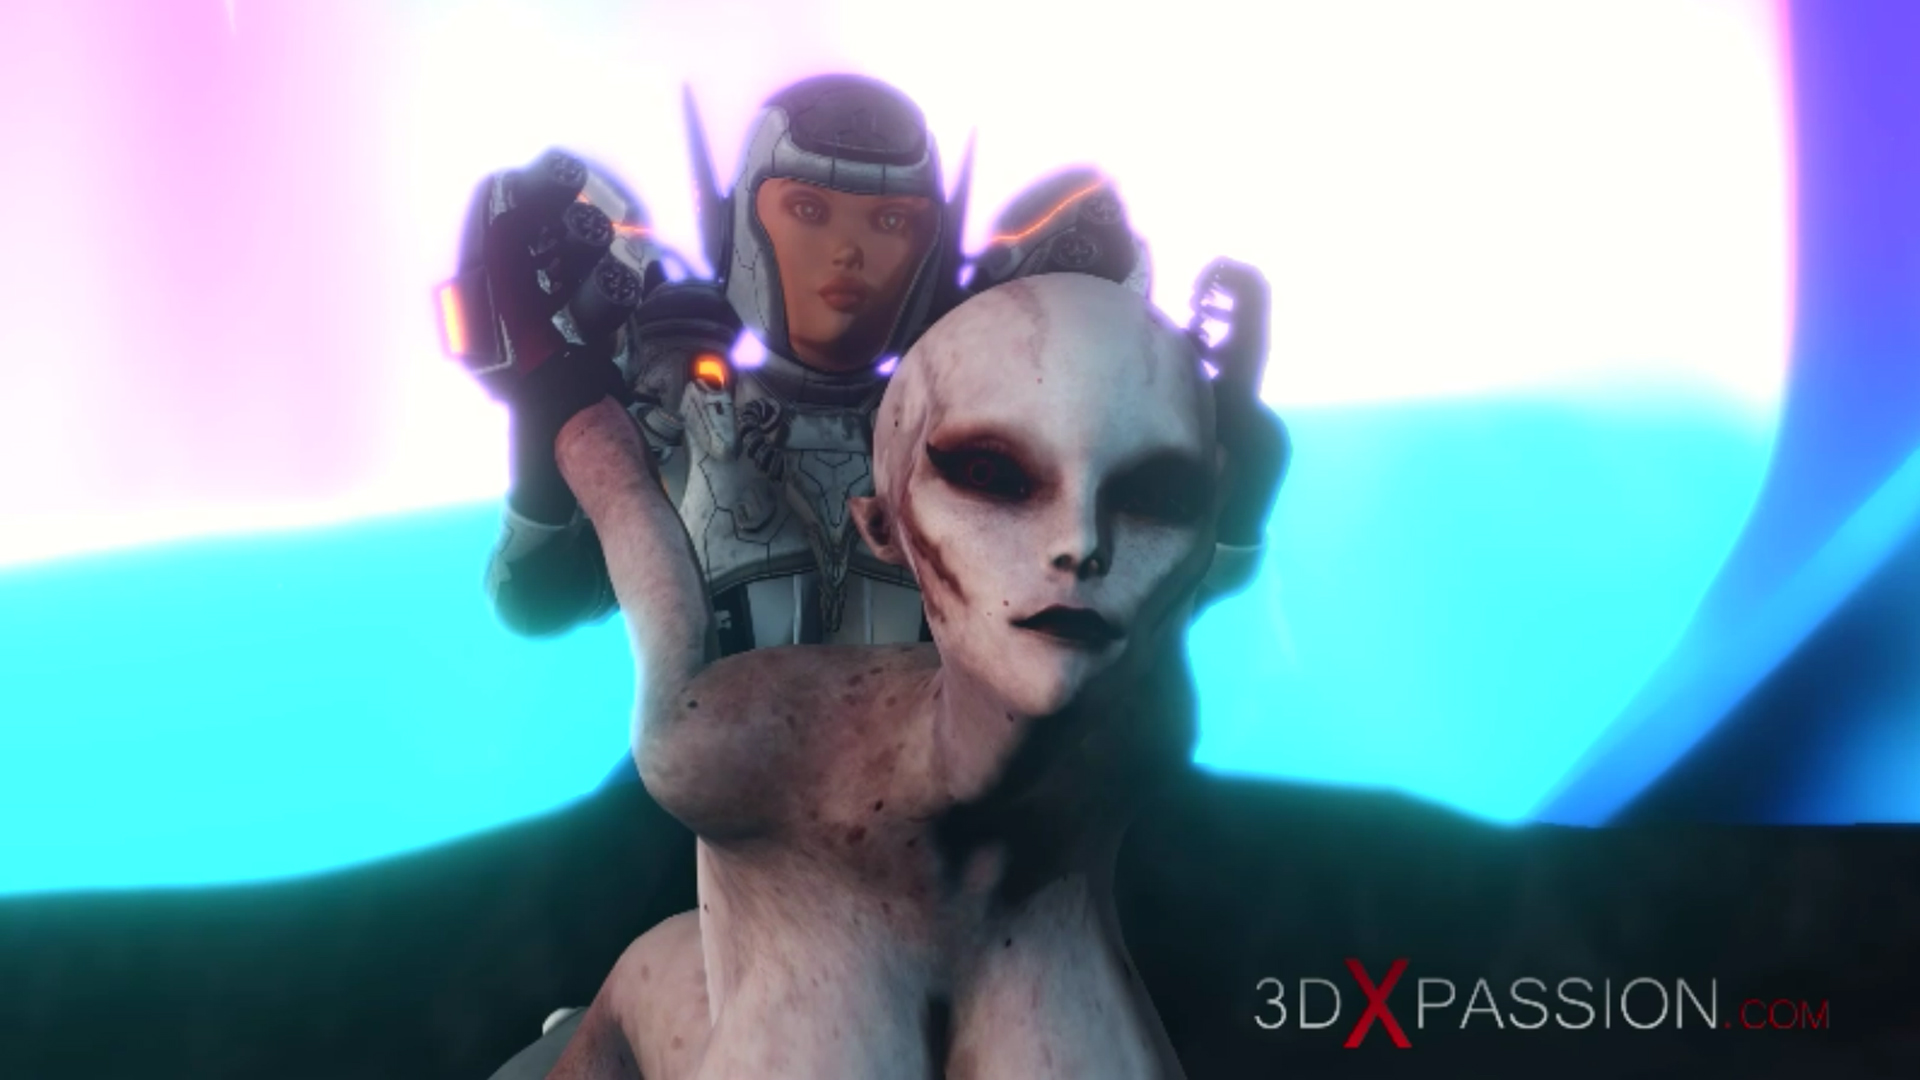 Female alien gets fucked hard by sci-fi explorer in spacesuit on exoplanet